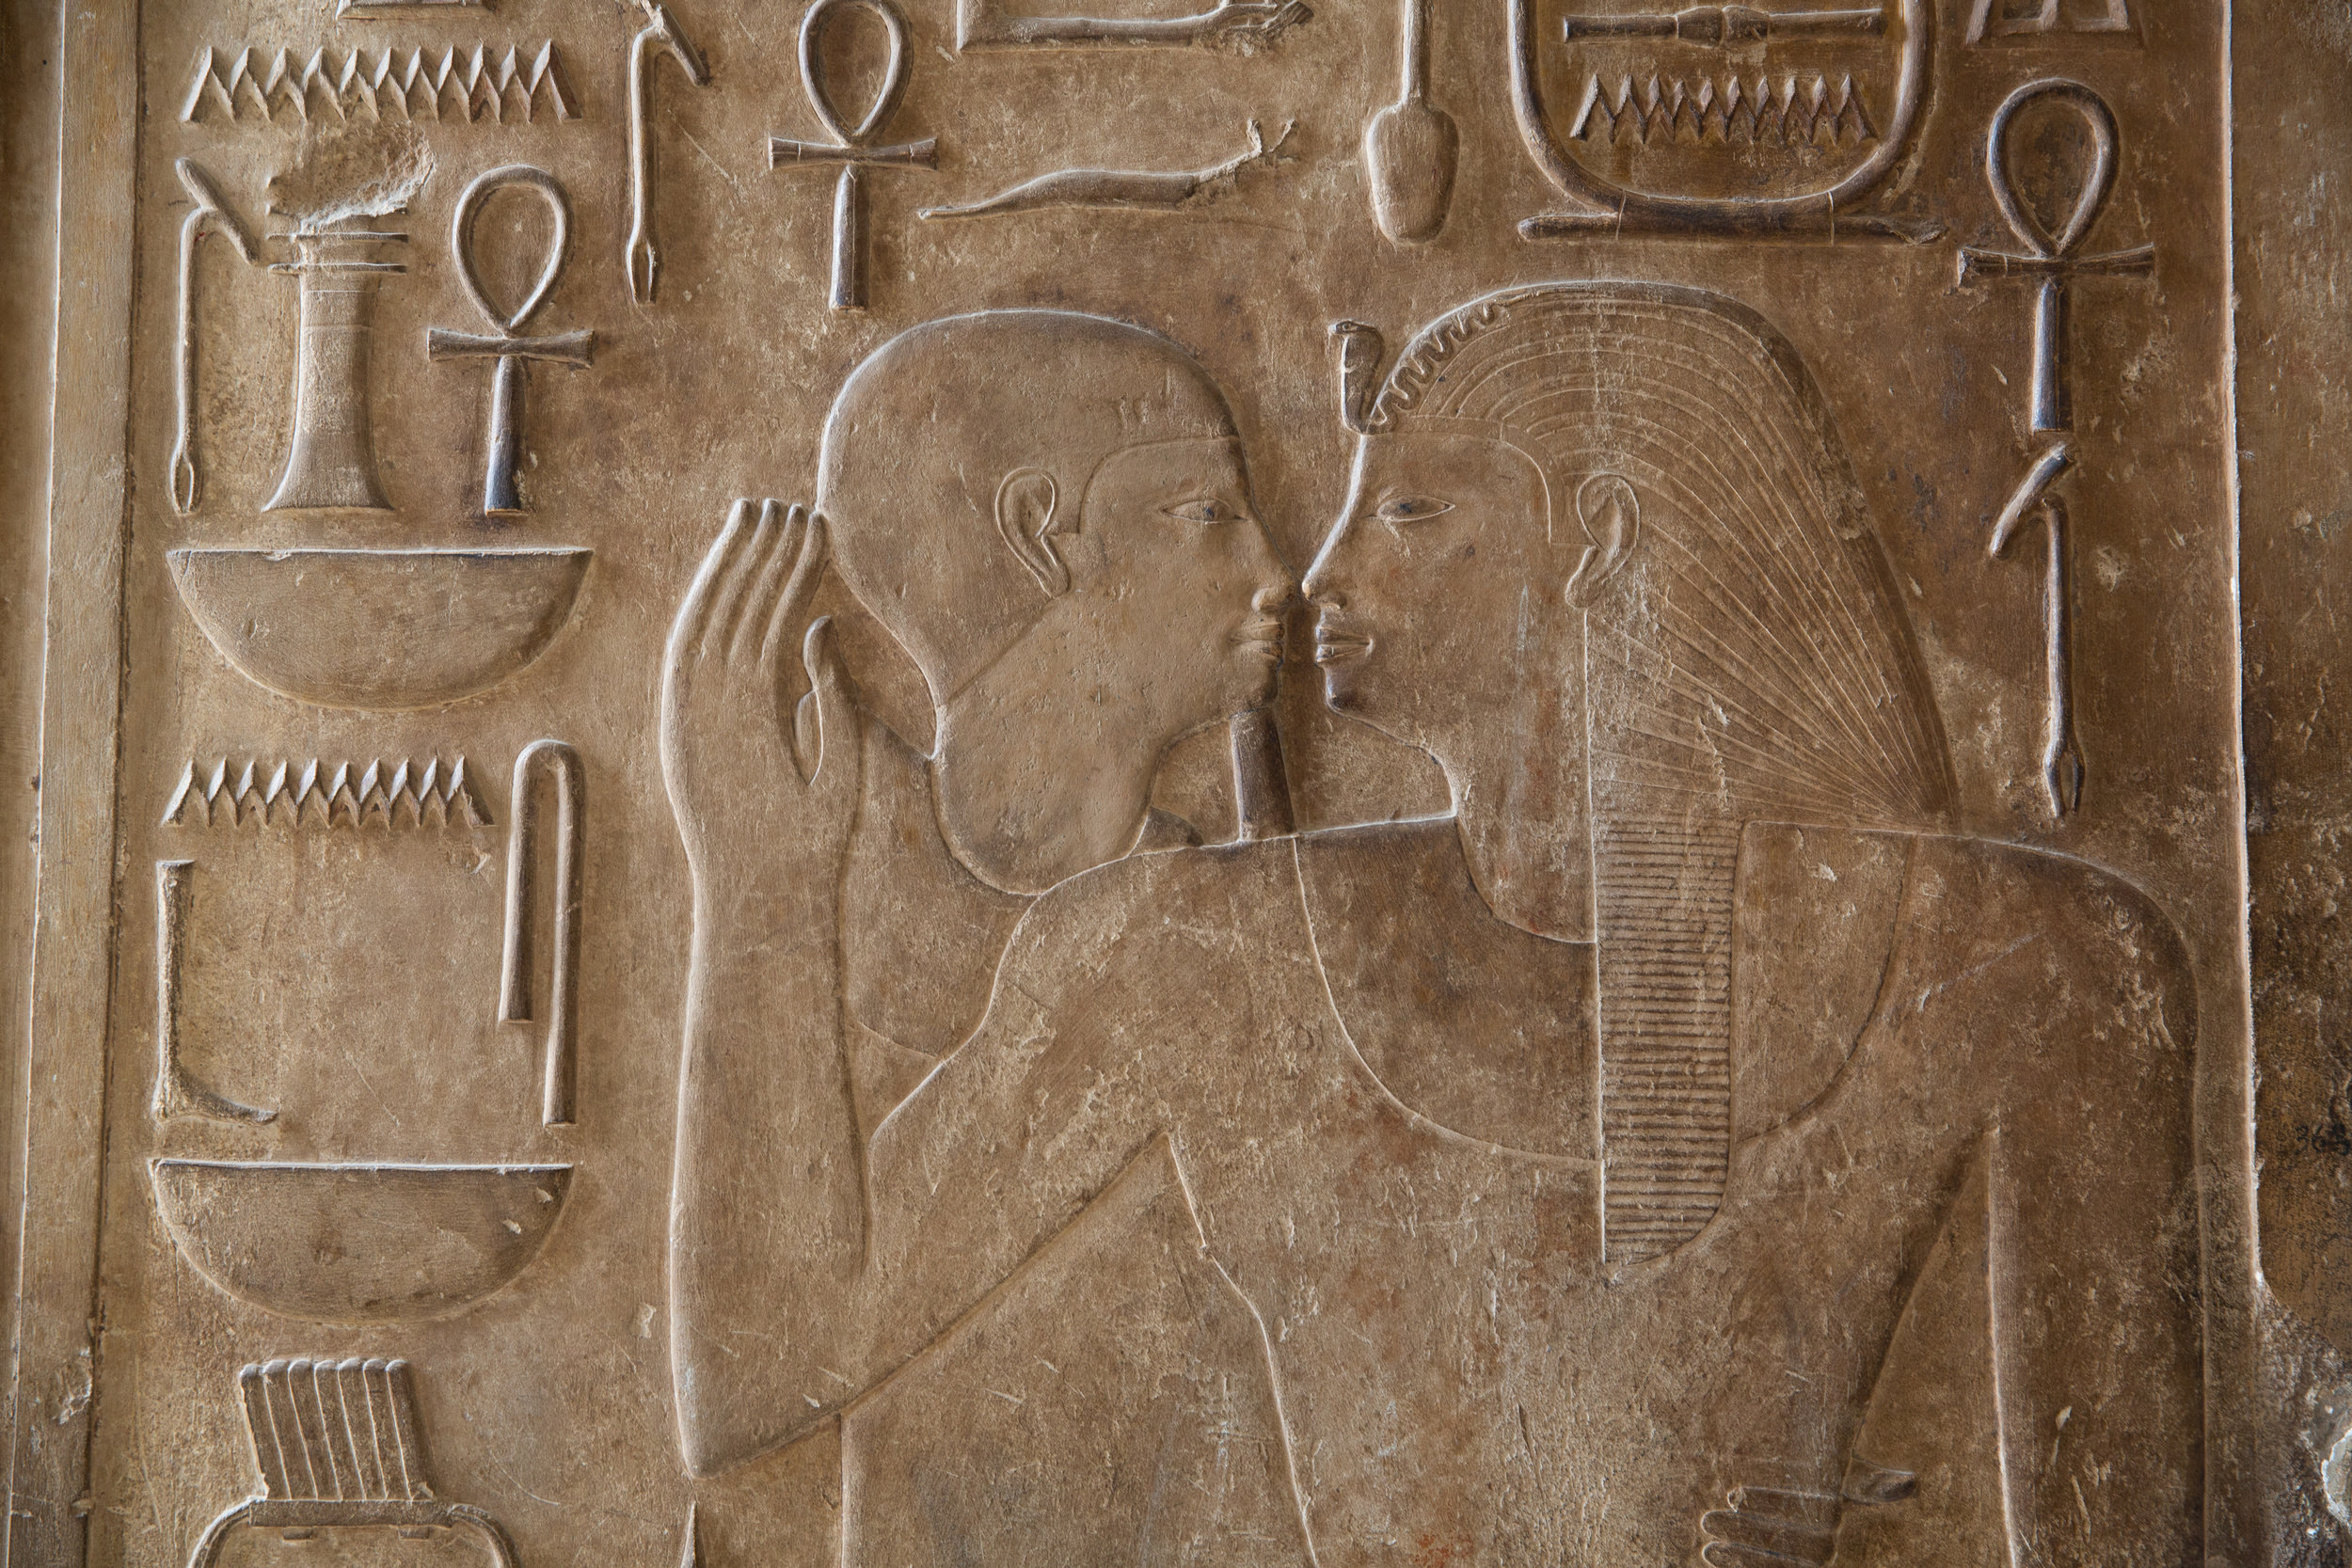 'Kissing' relief in Temple - Egypt - Wild Earth Expeditions